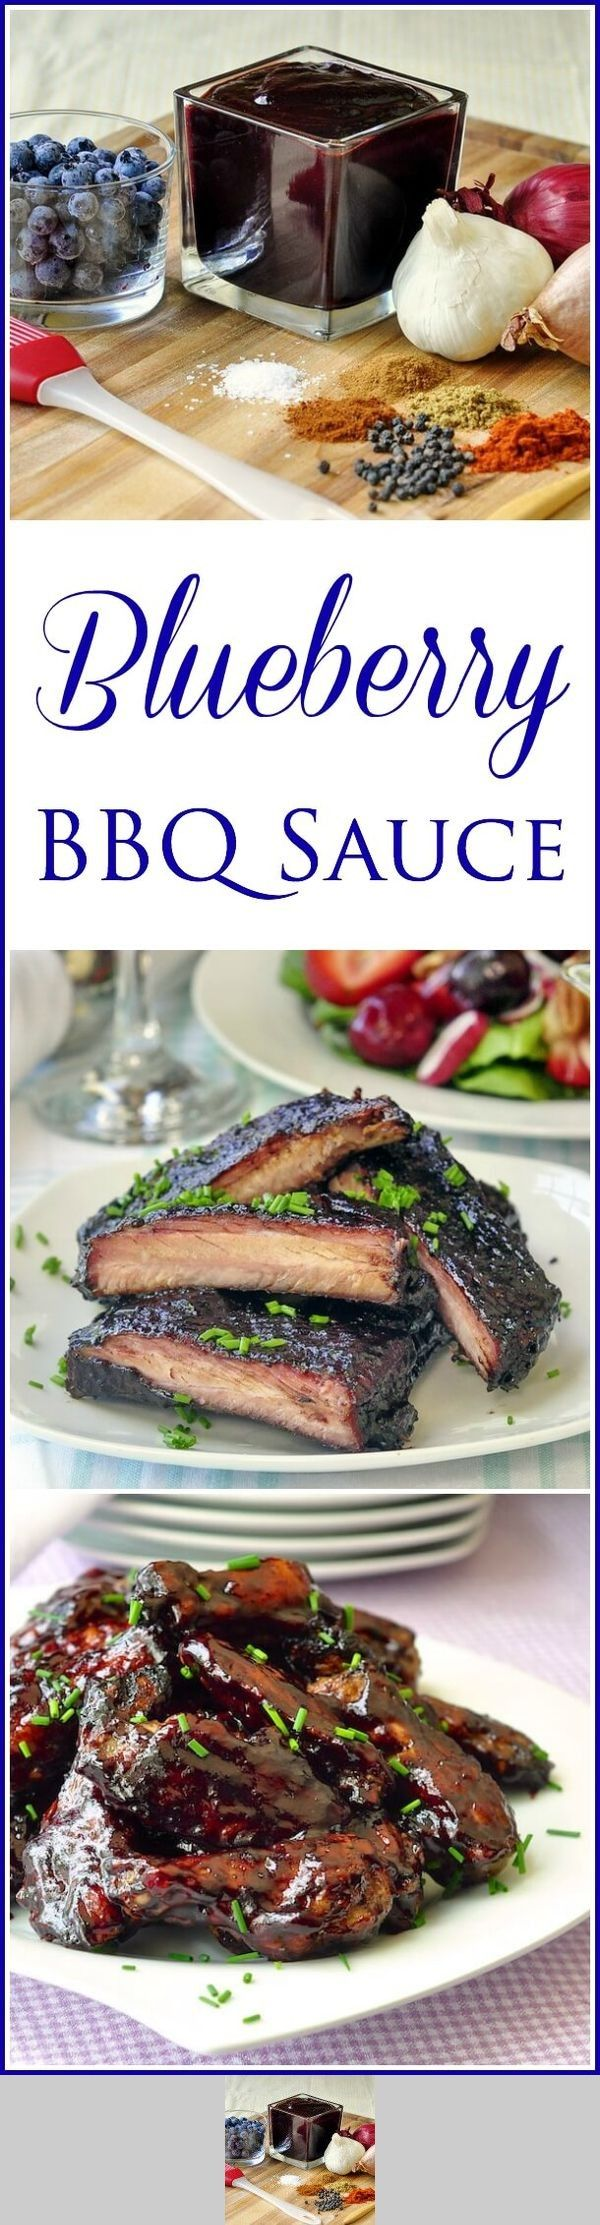 Blueberry Barbecue Sauce